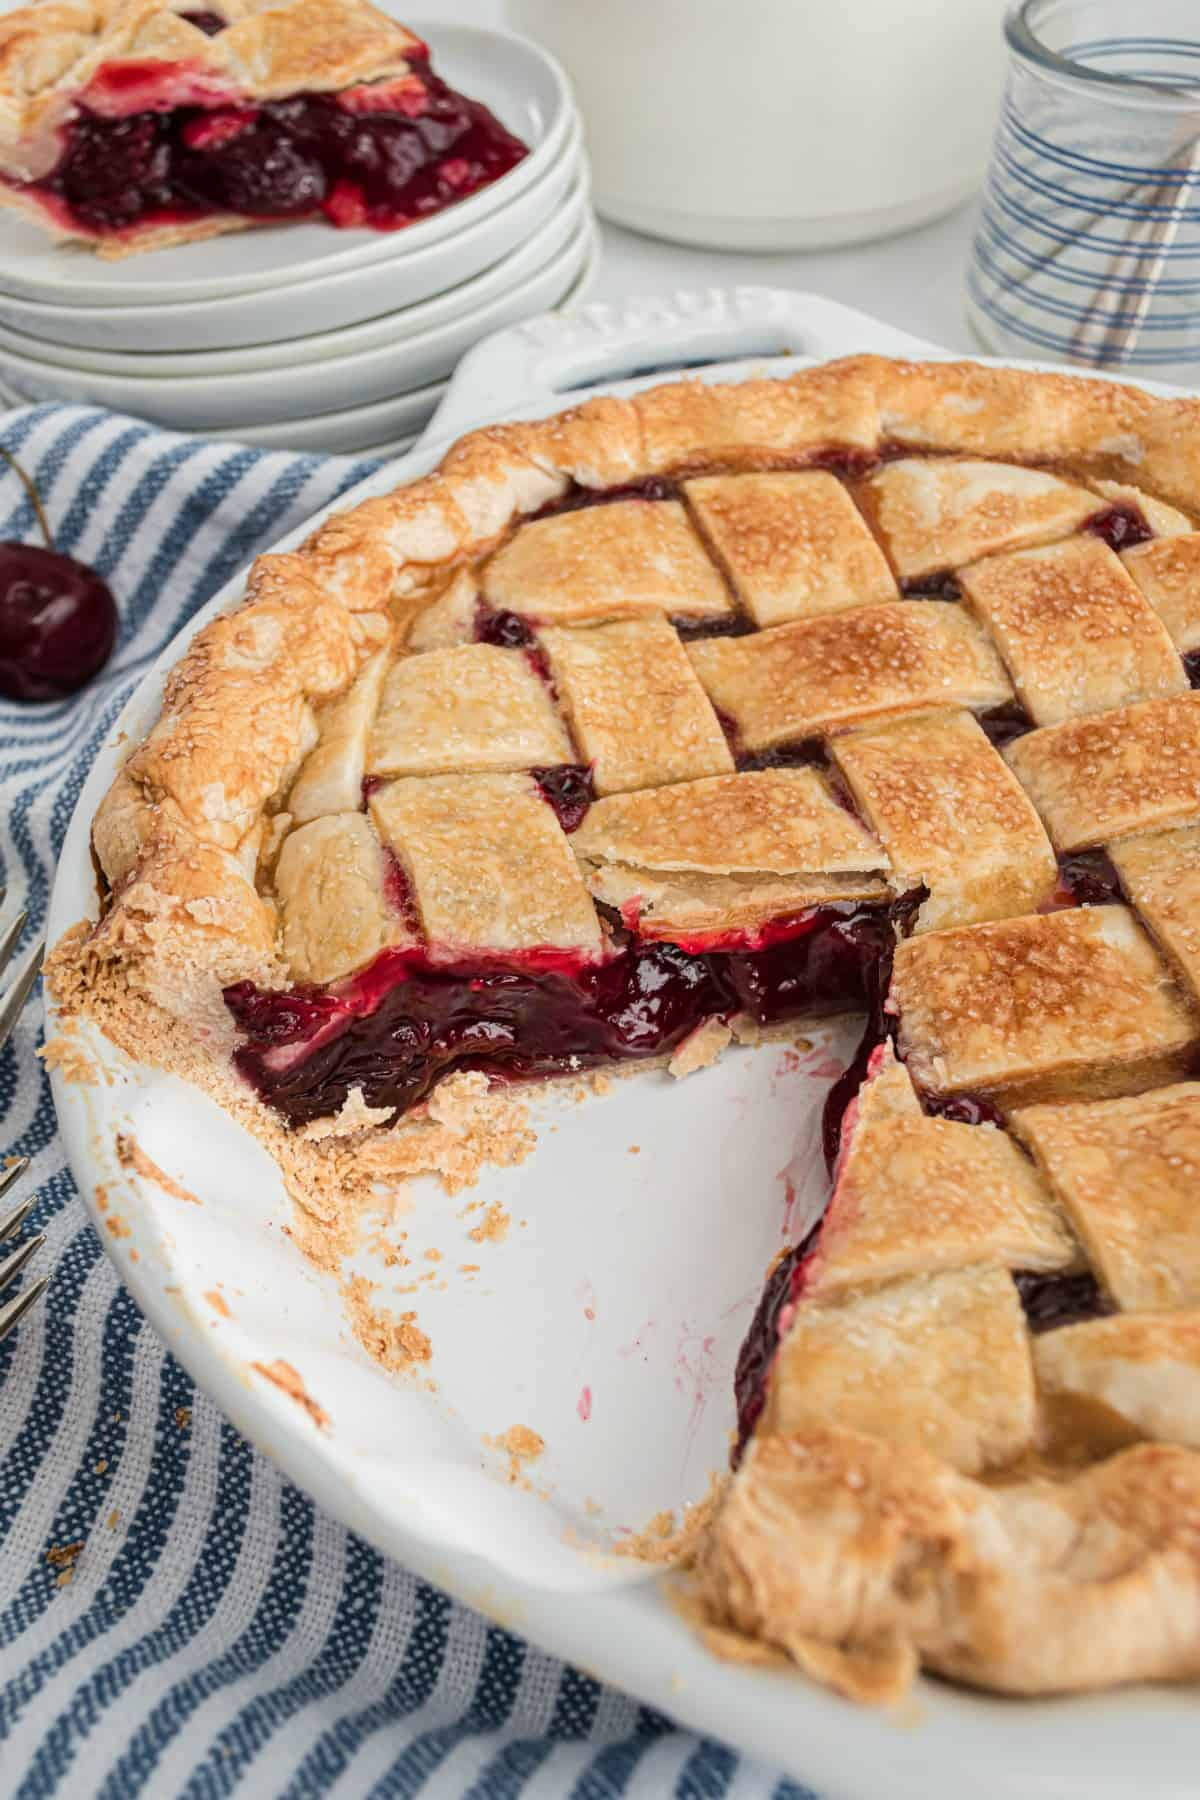 Whole cherry pie in a white pie plate with one slice removed.